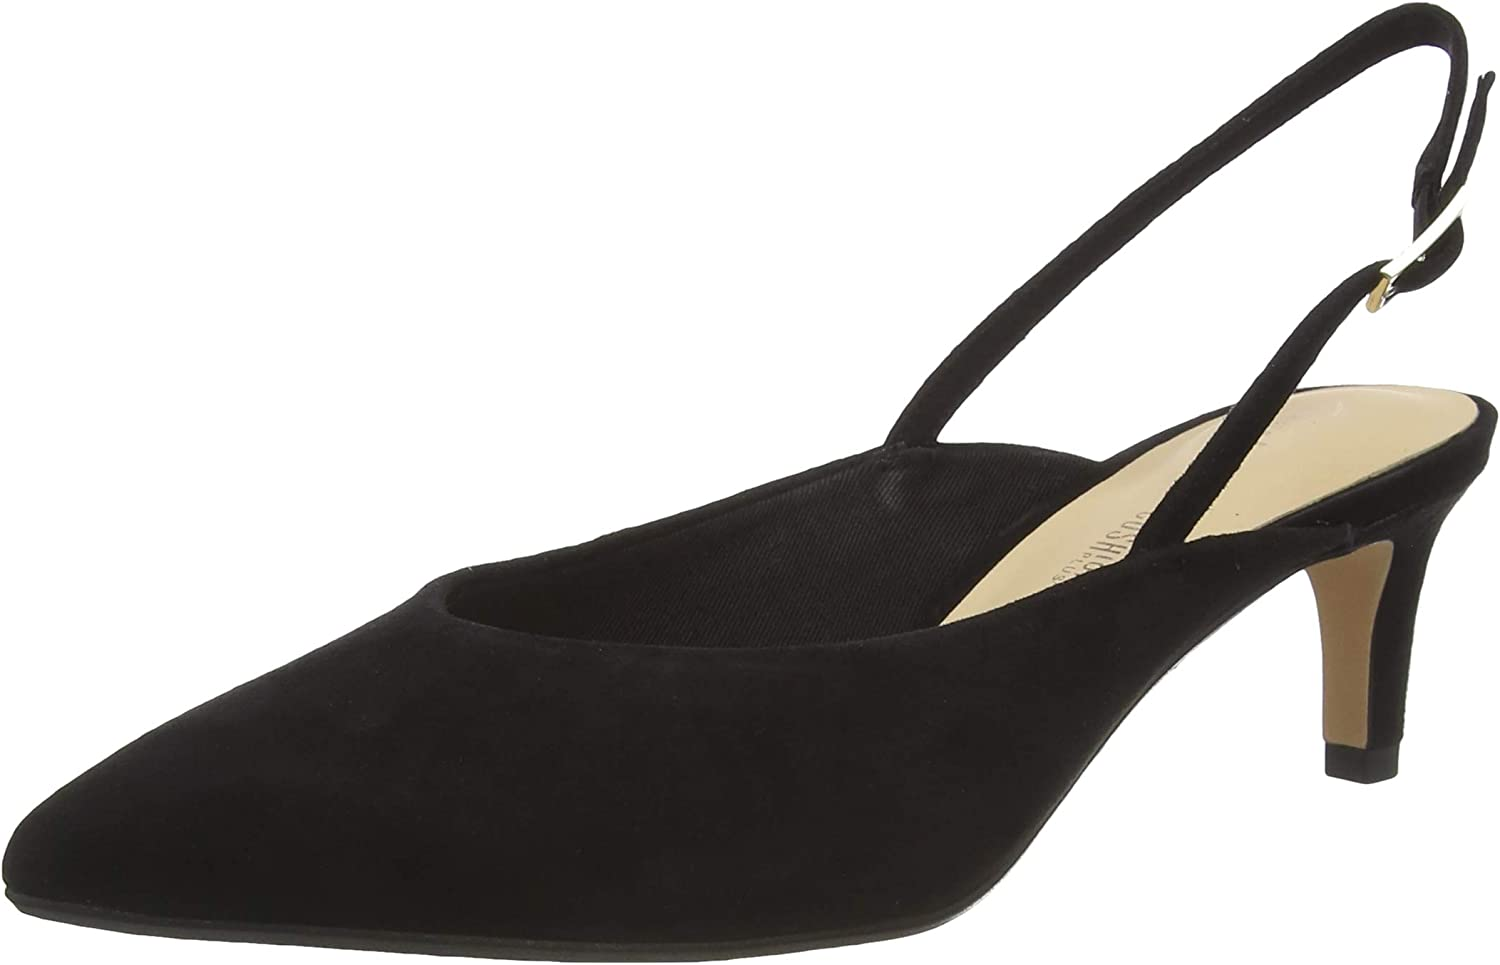 Clarks In a popularity Laina55 Sling Court Black Chicago Mall Shoes Women